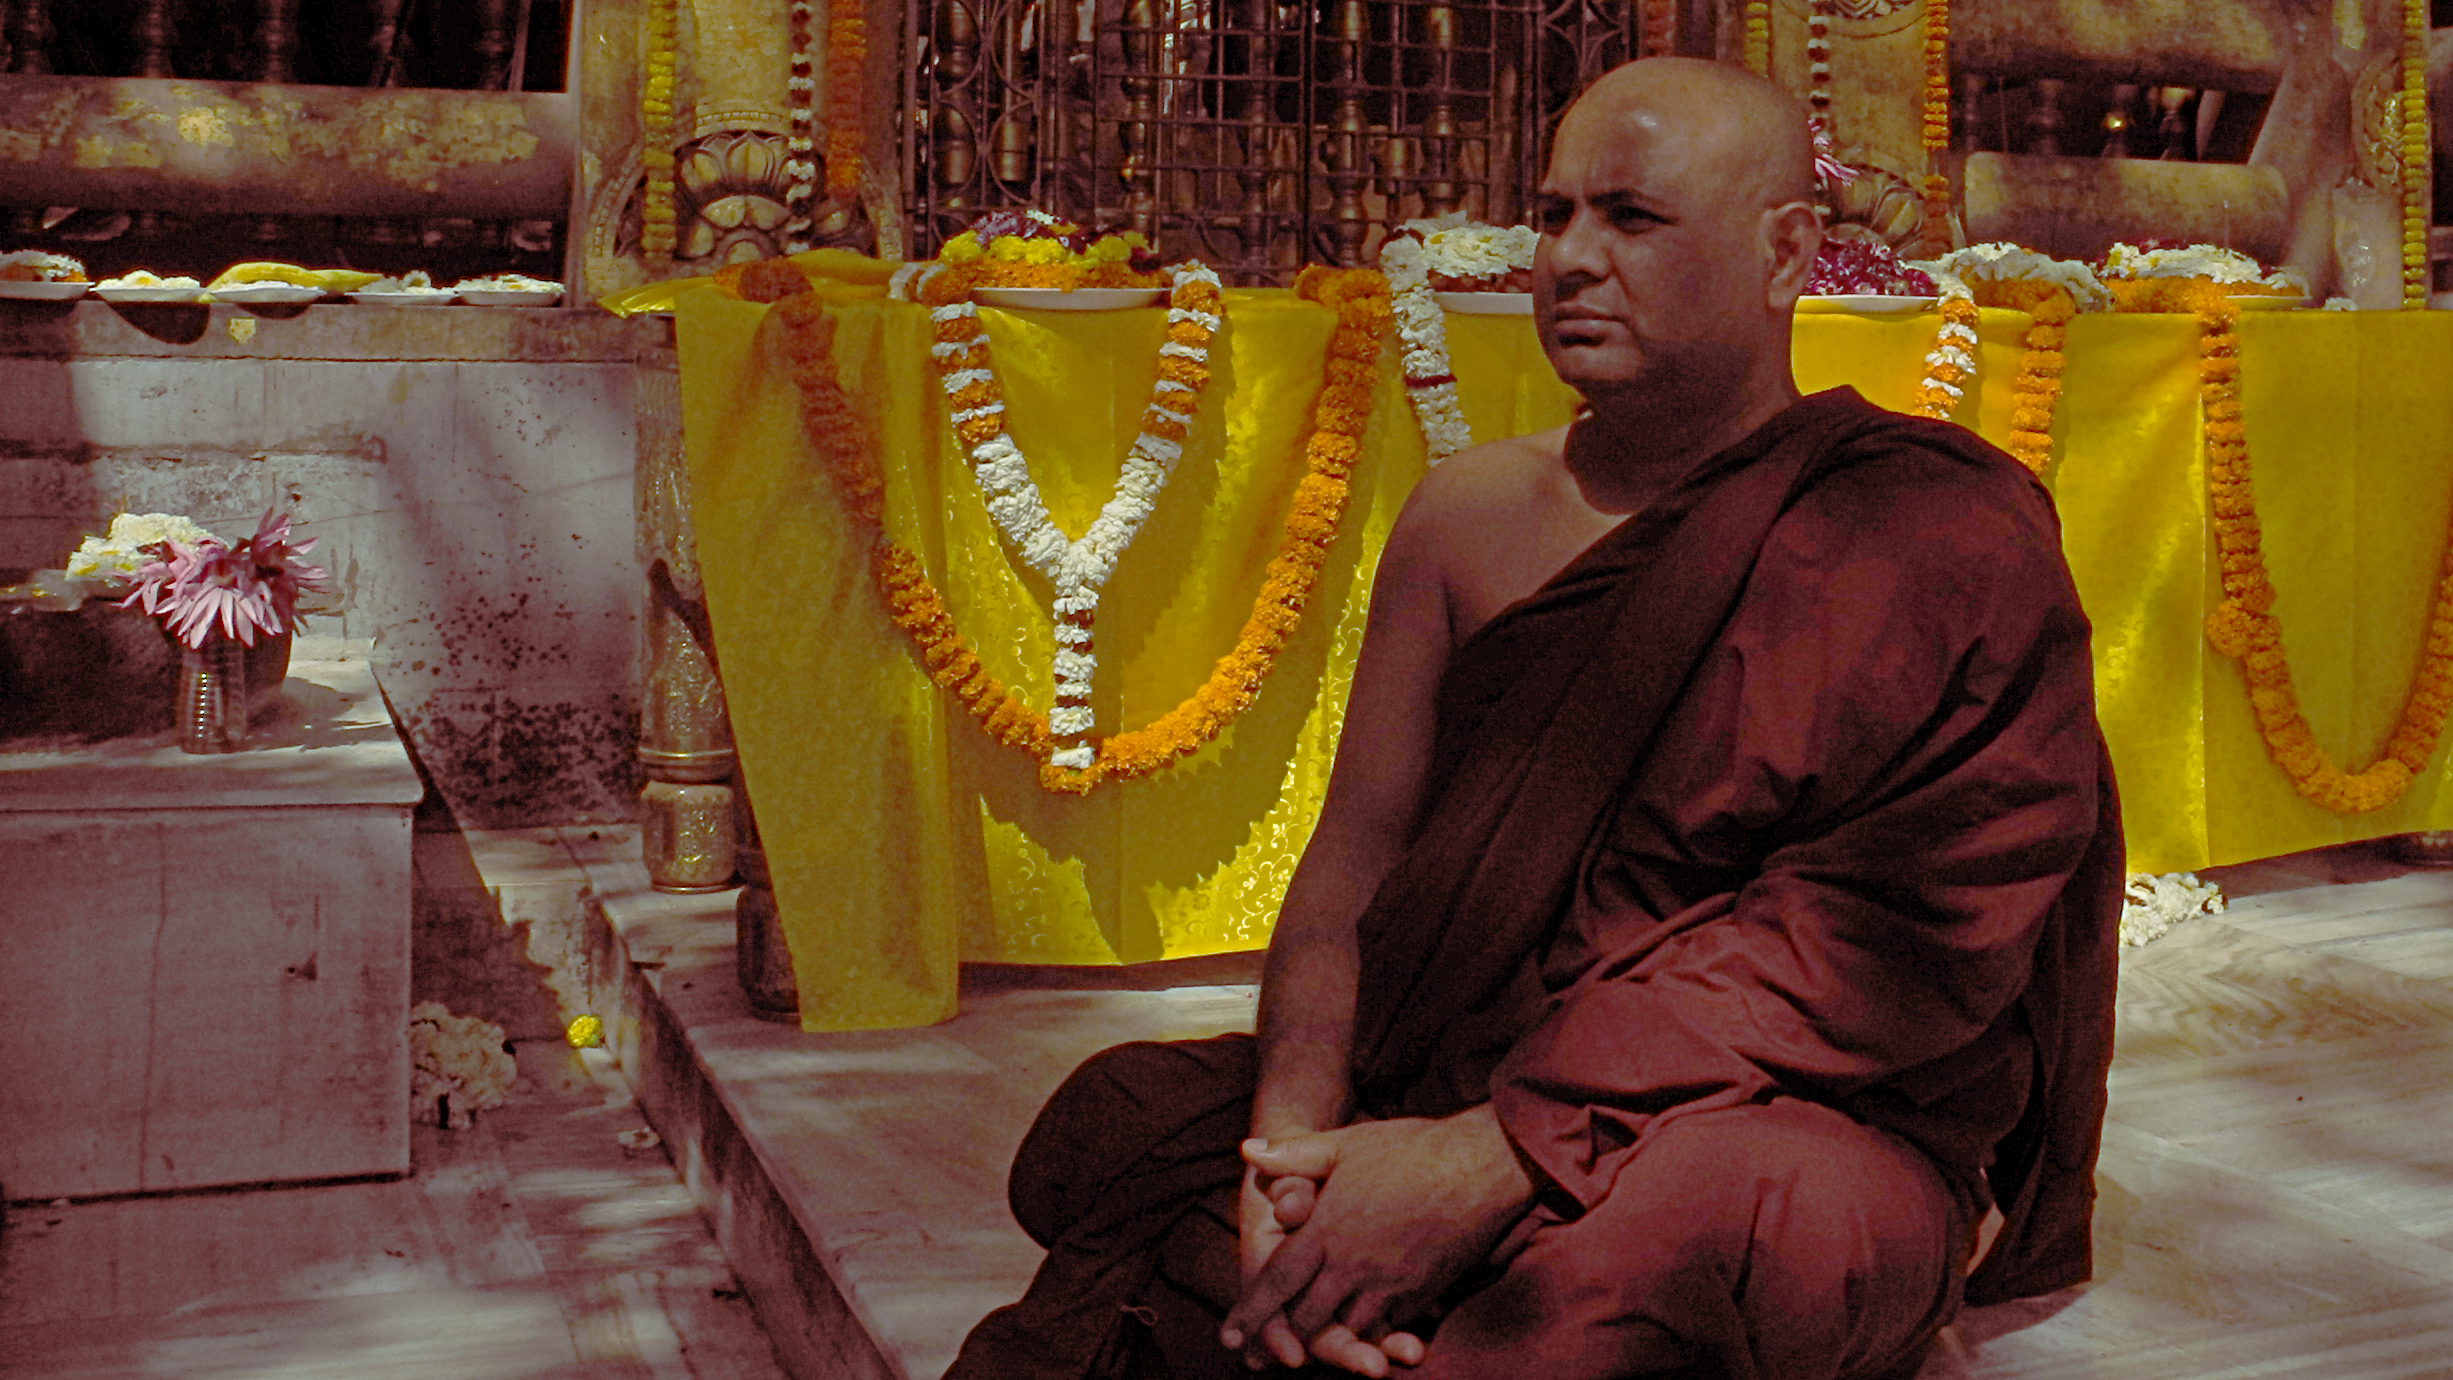 Buddhist monk in red robes sits in front of altar